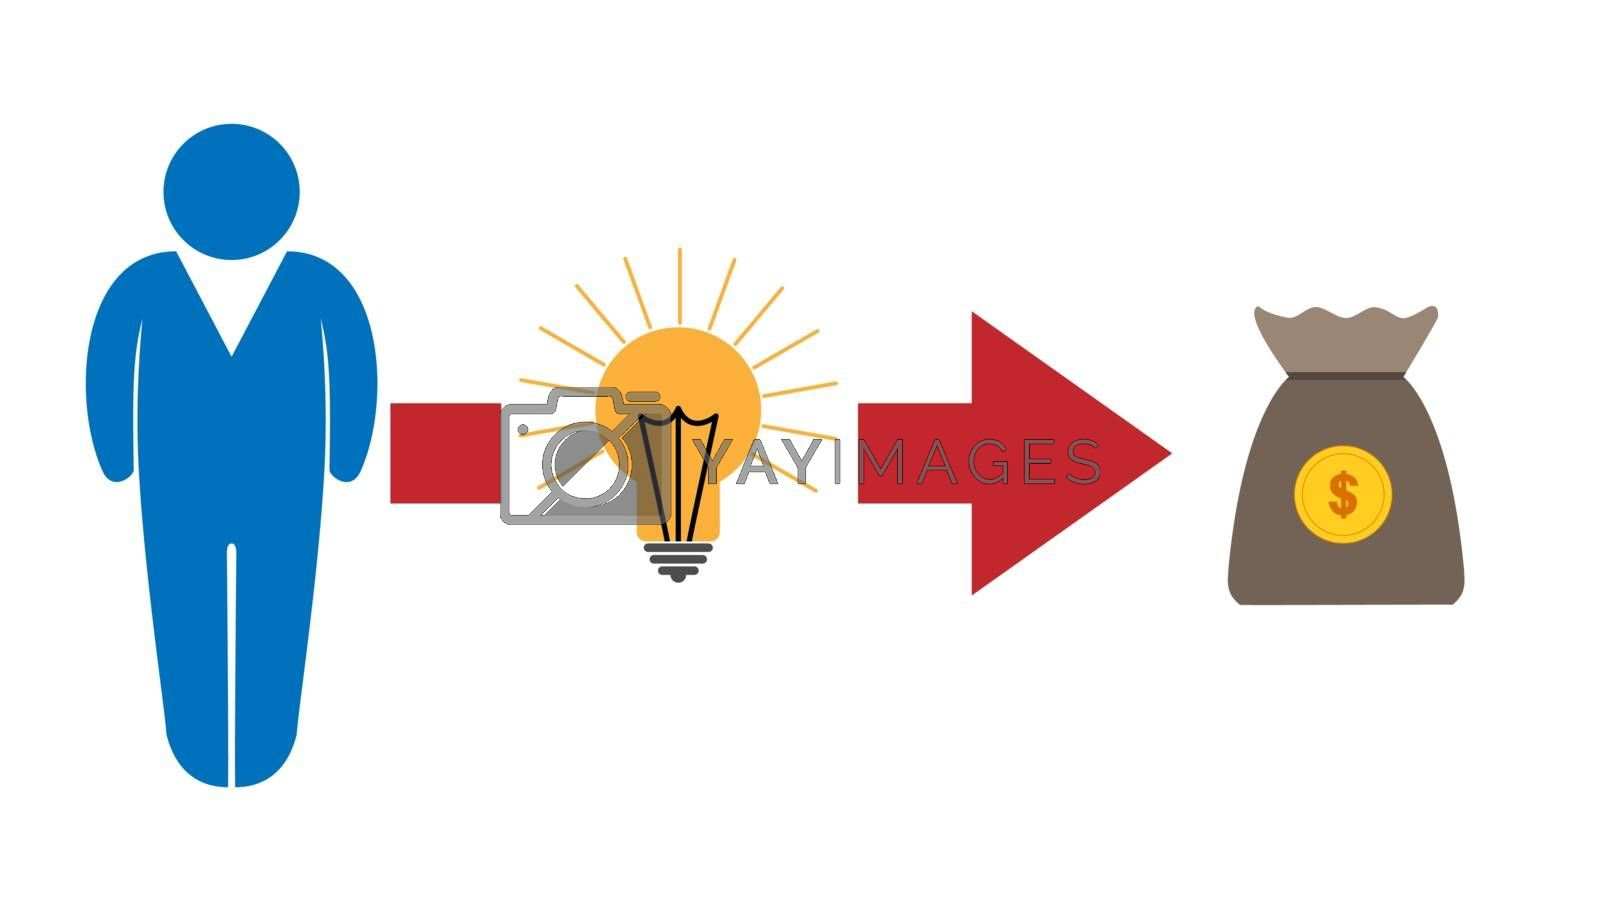 idea of getting money. Silhouette of a man, a light bulb and a bag of money